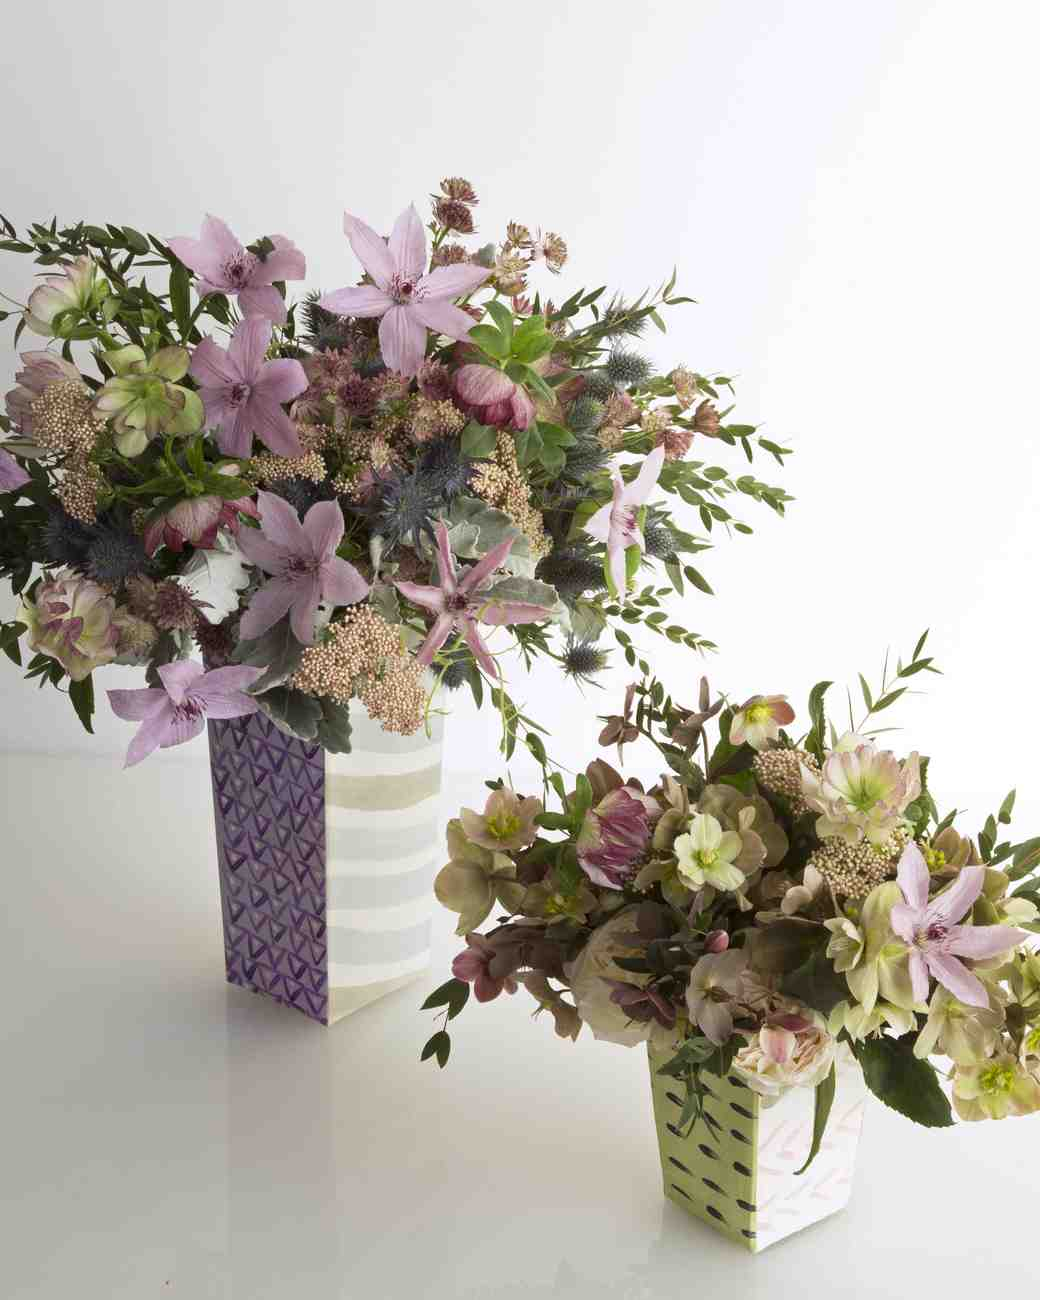 Hand-Painted Fabric Vases